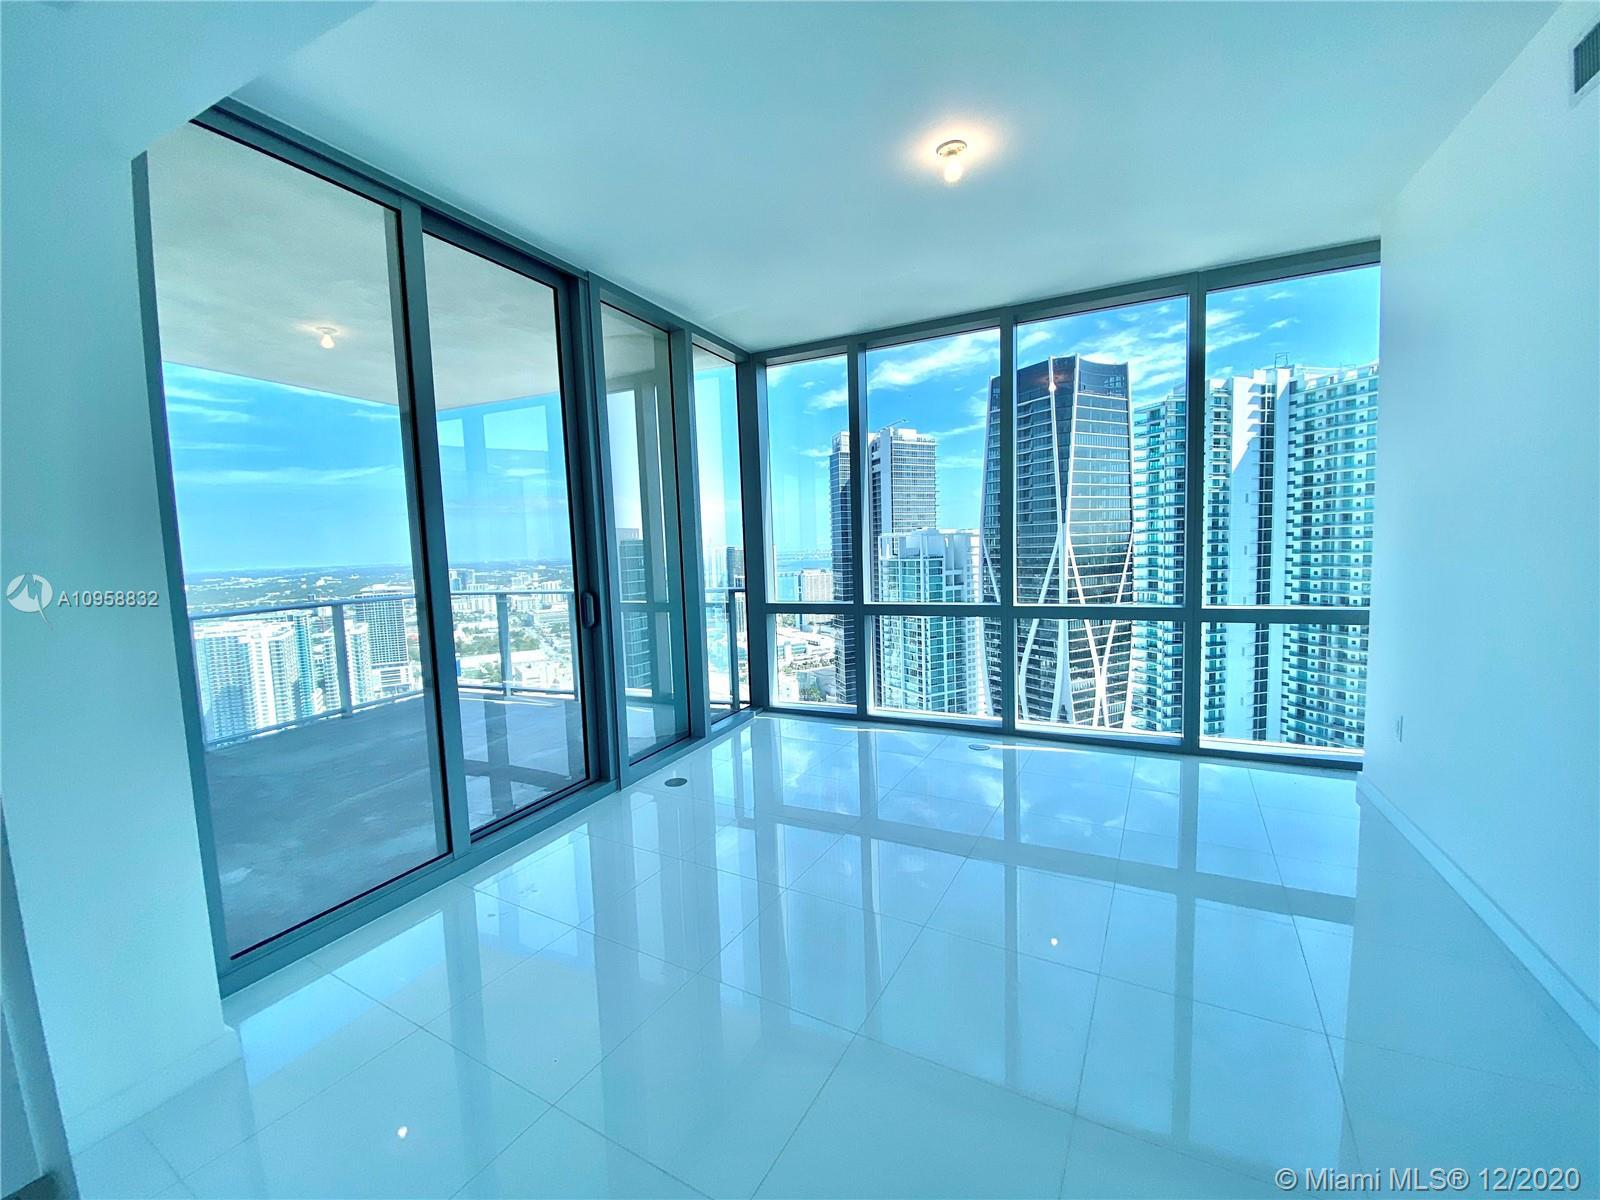 The Highest Floor available for 3 bed + DEN /4 Bath in the most desirable building Paramount Miami W